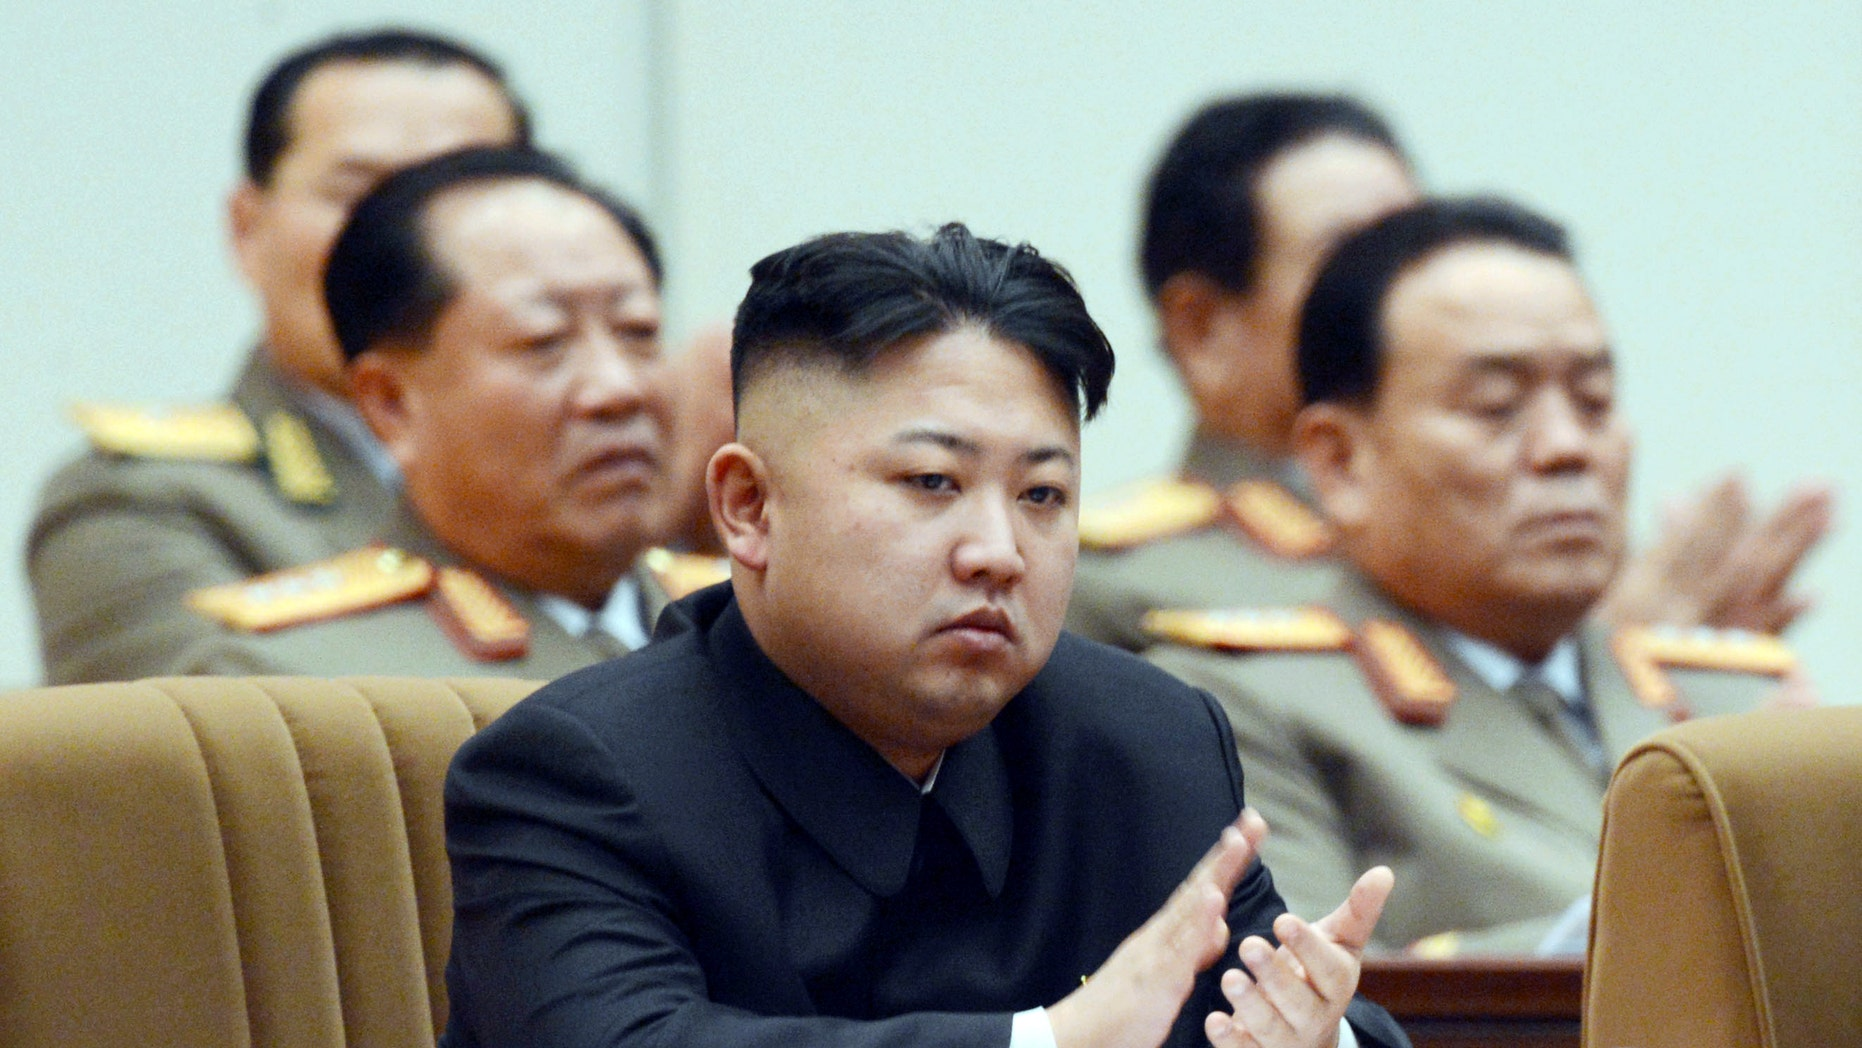 North Korean leader Kim Jong Un claps his hands as he attends a national memorial service on the eve of the anniversary of Kim Jong Il's death in Pyongyang, North Korea, Sunday, Dec. 16, 2012. (AP Photo/Kyodo News) JAPAN OUT, MANDATORY CREDIT, NO LICENSING IN CHINA, HONG KONG, JAPAN, SOUTH KOREA AND FRANCE